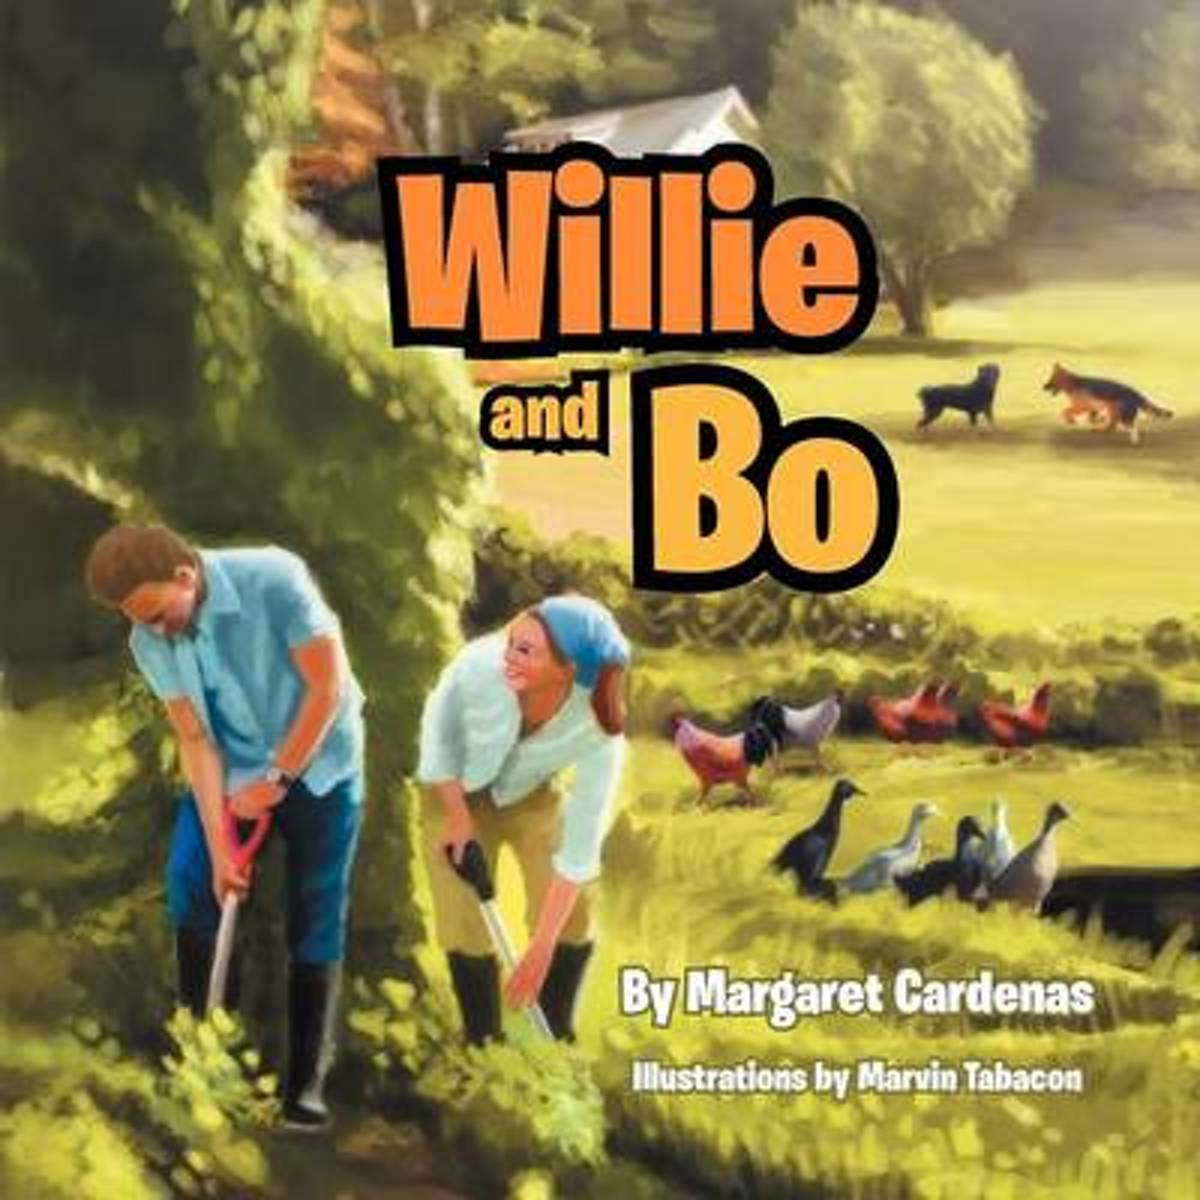 Willie and Bo